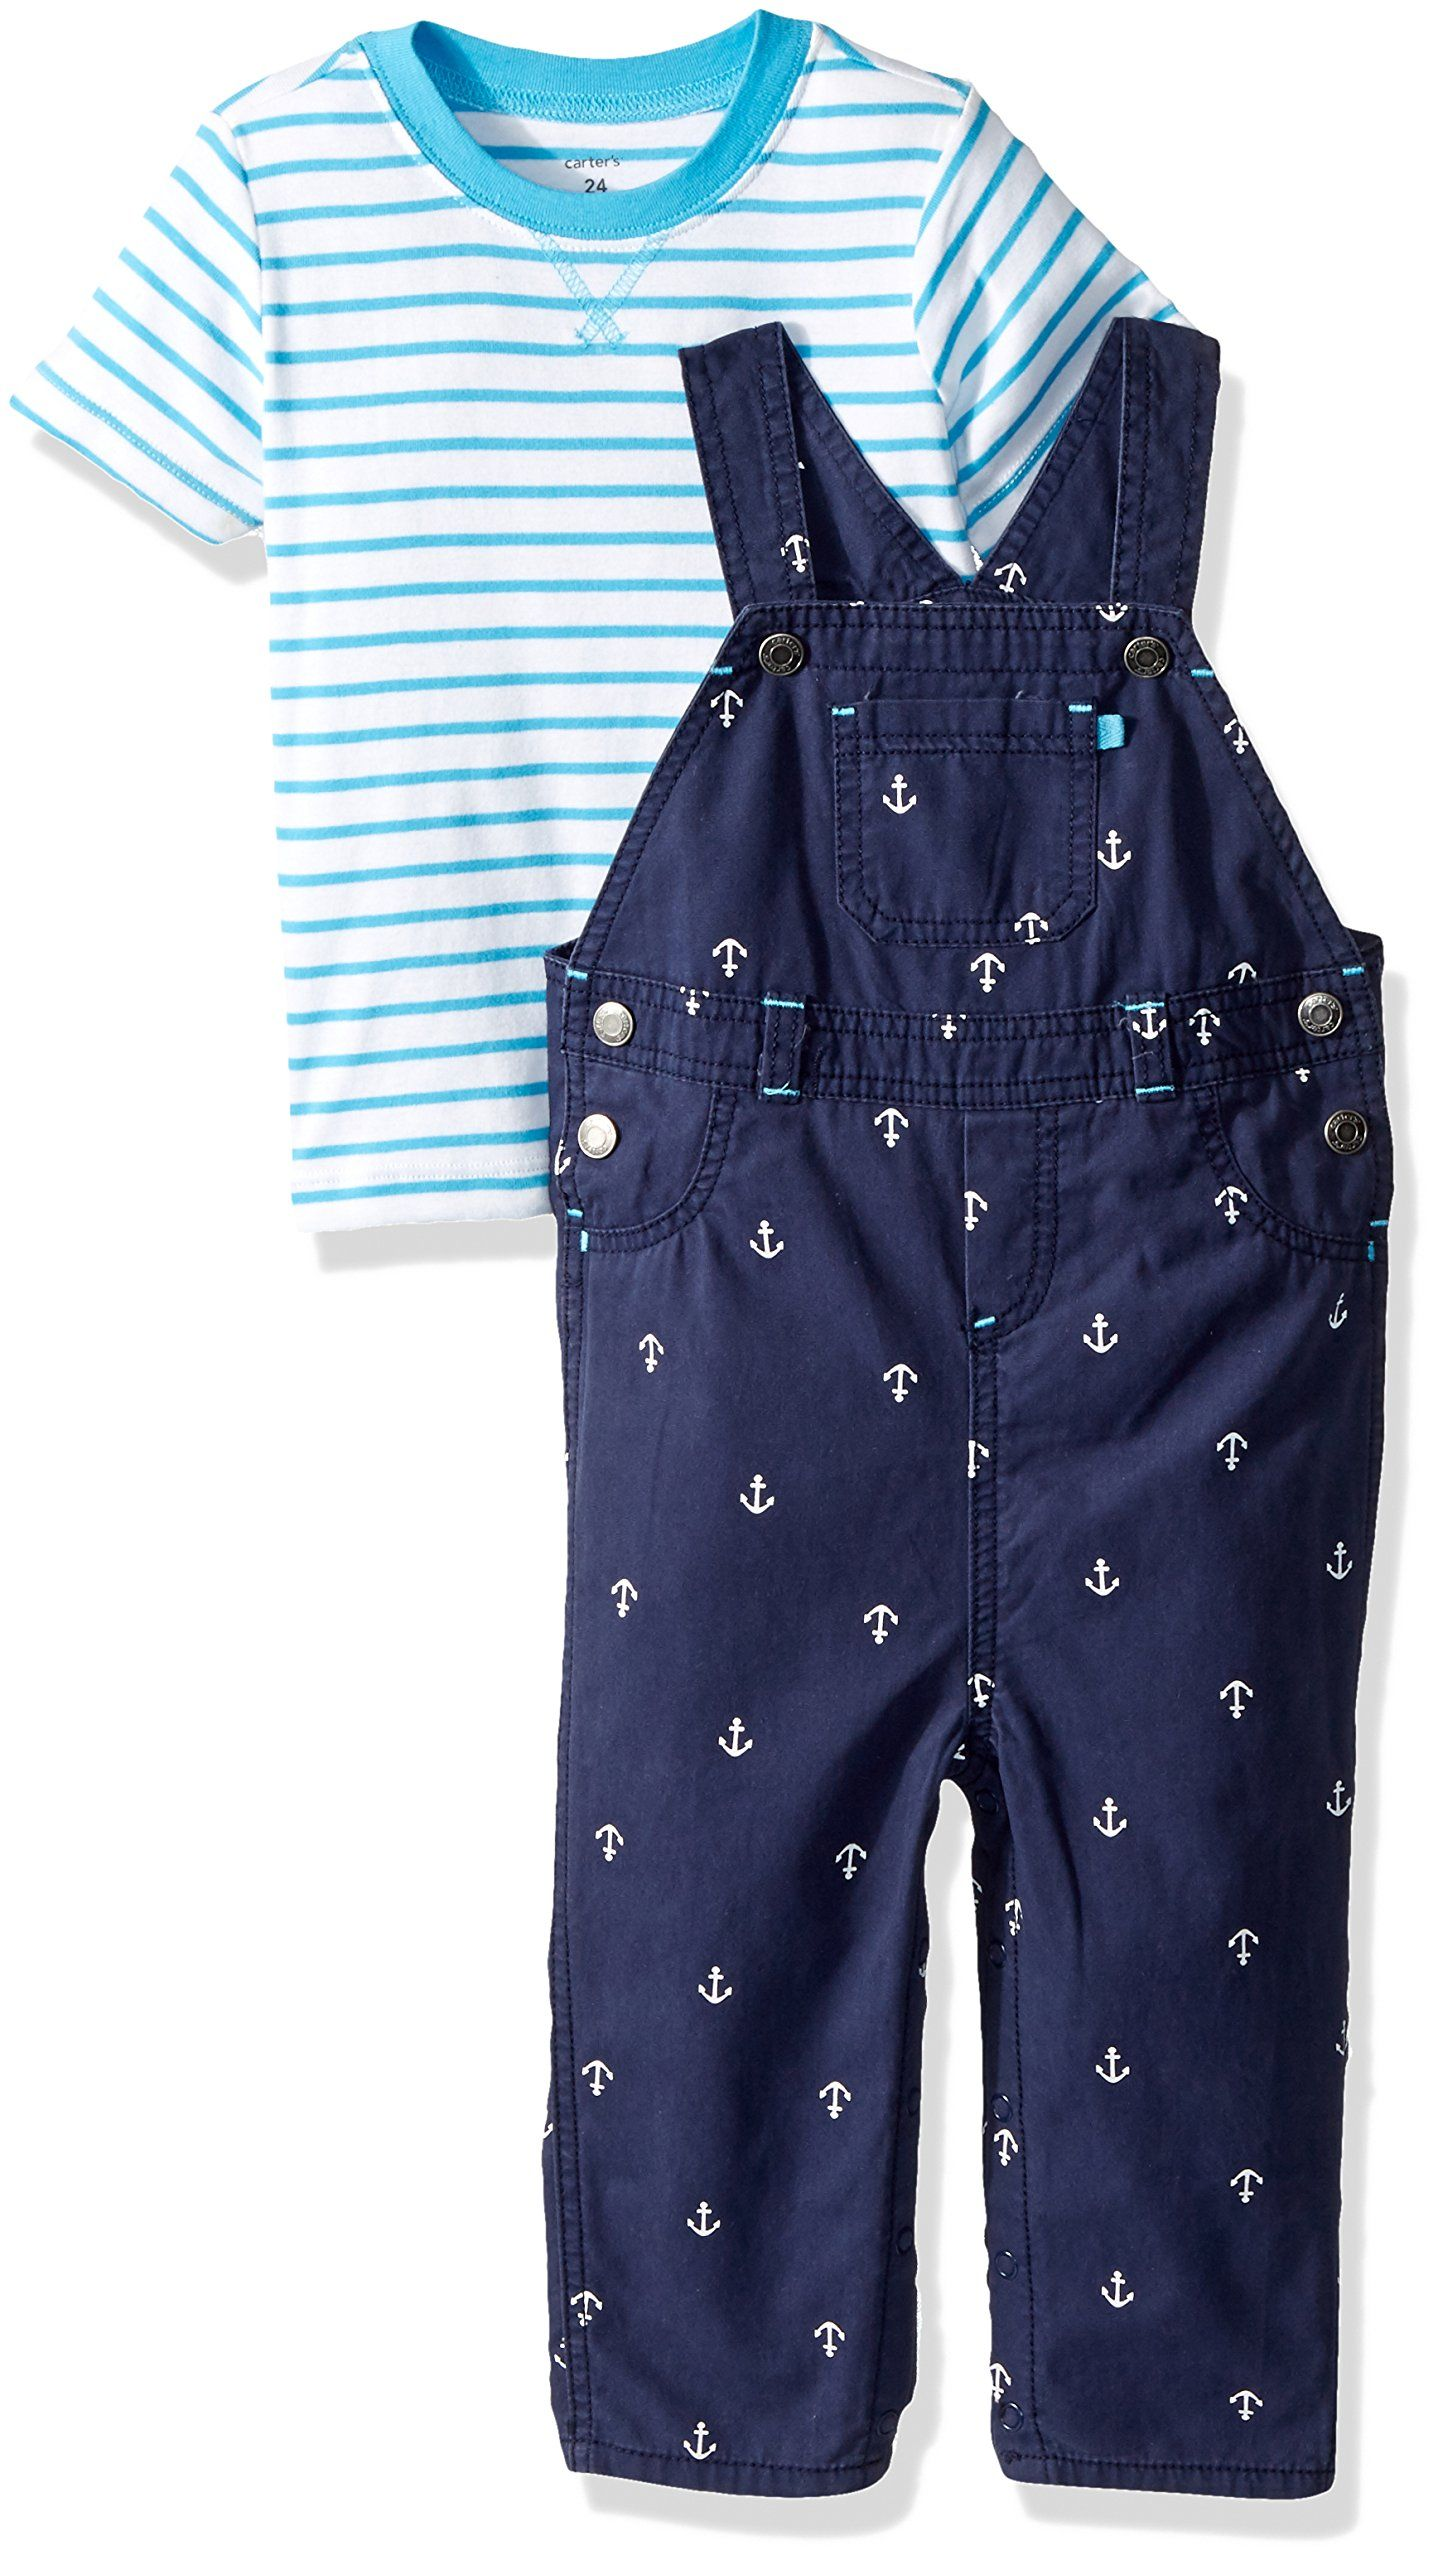 Kickee Pants Baby Boys Print Short Sleeve Polo Romper W//Pocket Prd-kpbrp615-pfd